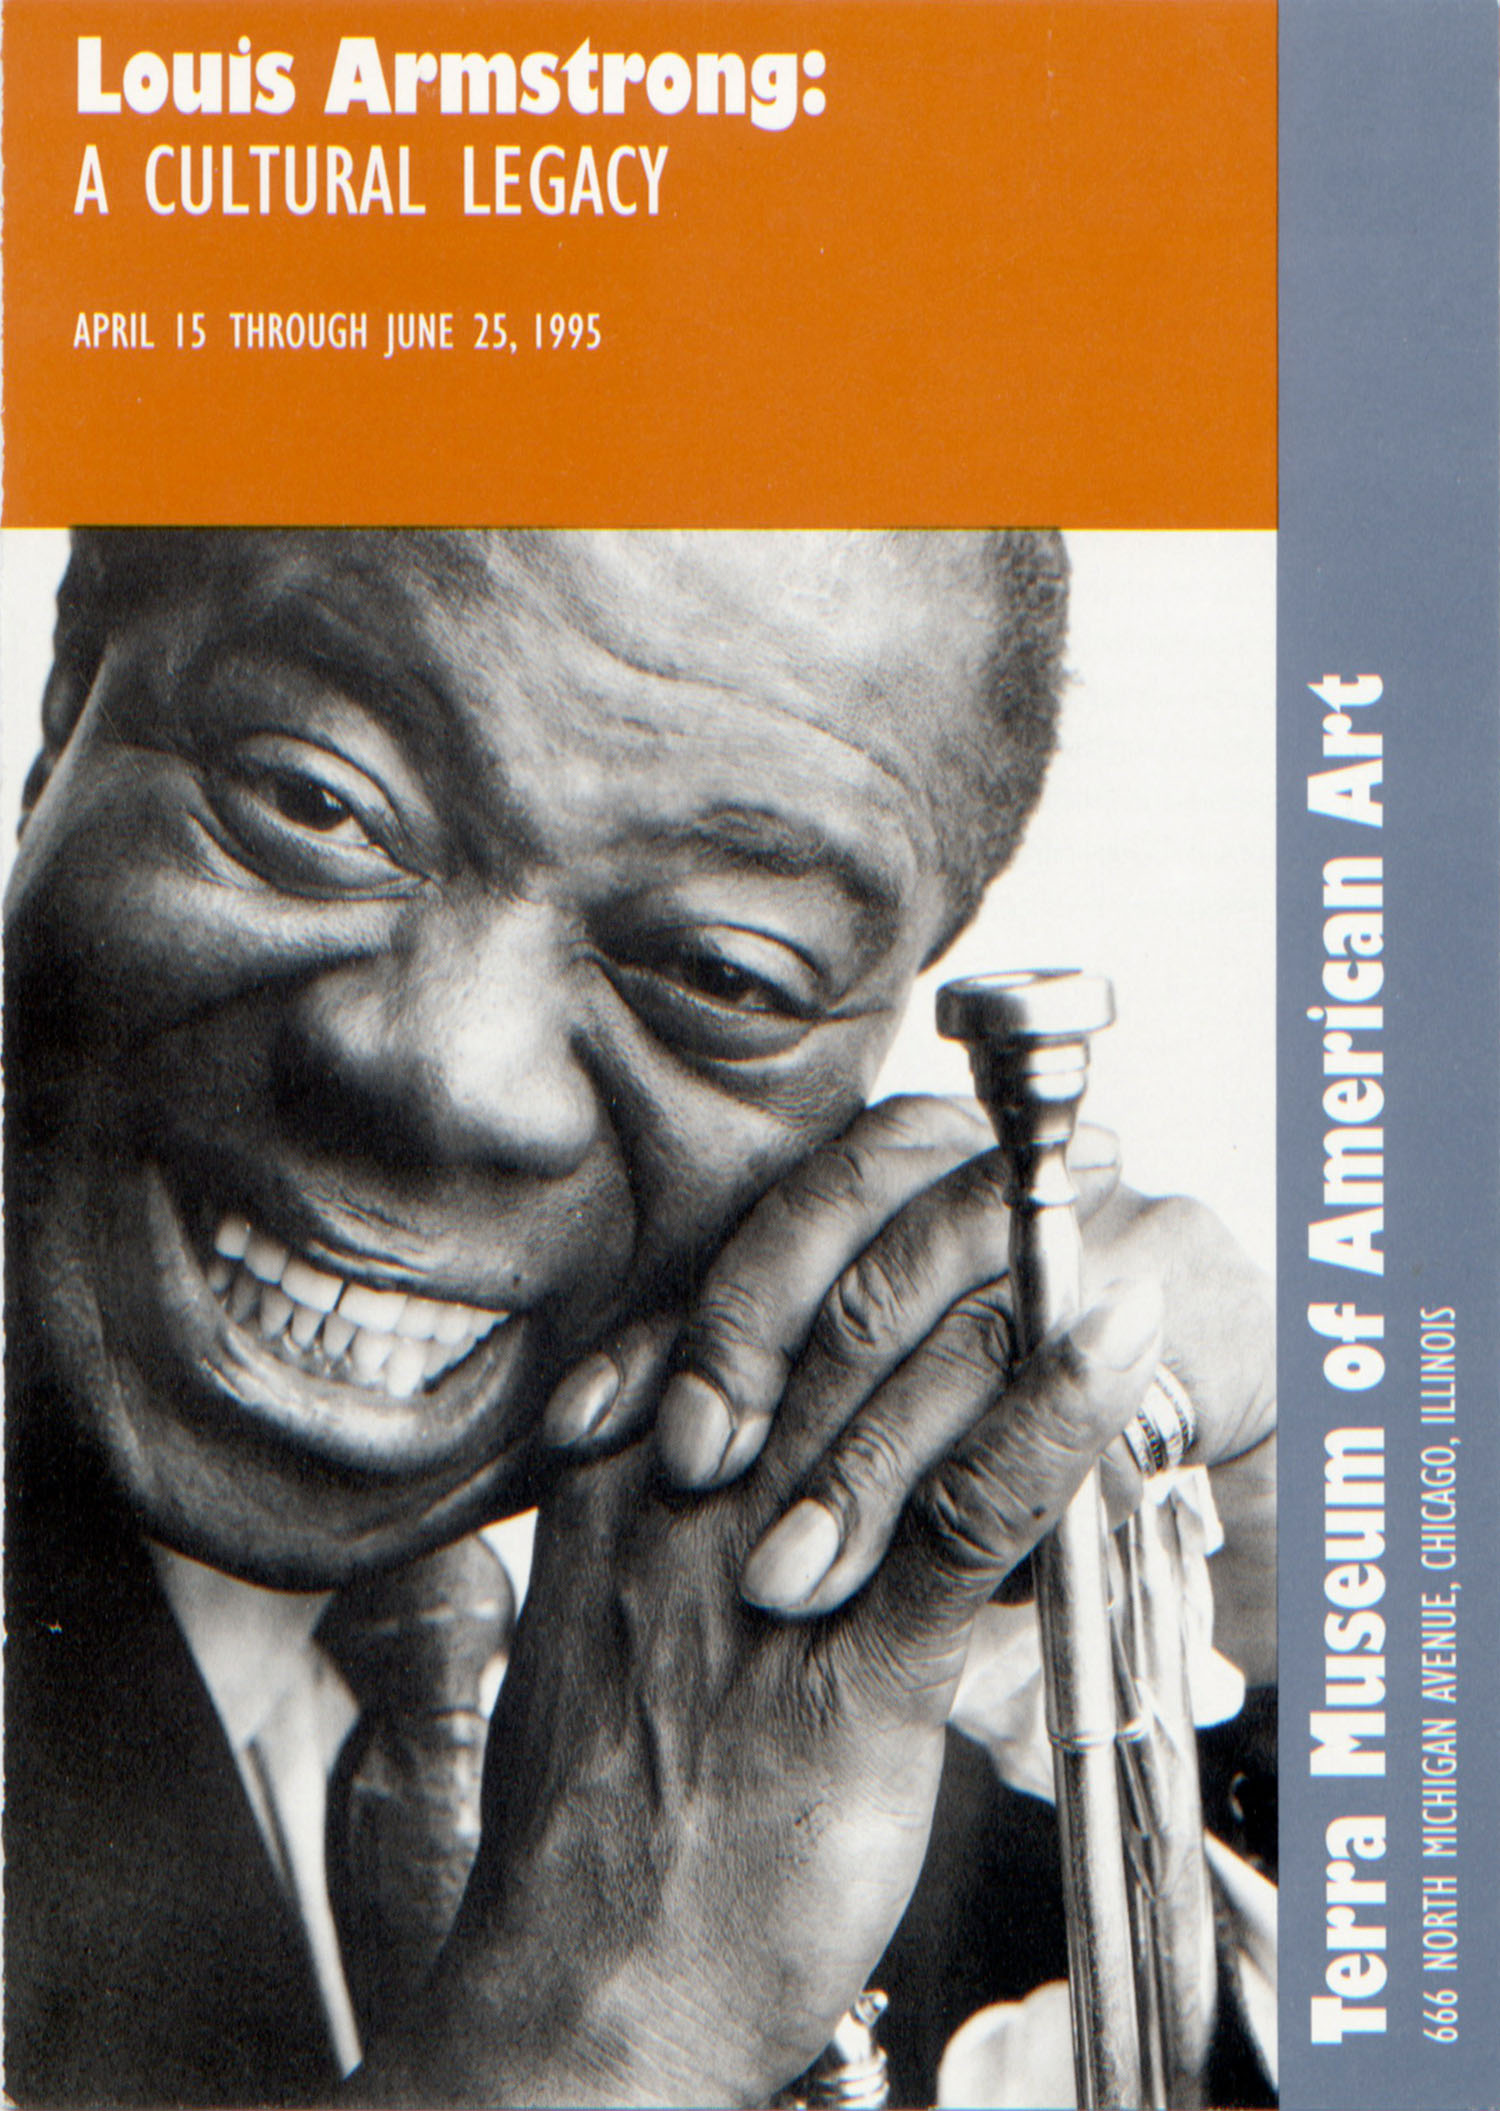 """Invitation to the opening of """"Louis Armstrong: A Cultural Legacy"""" at the Terra Museum of Art, Chicaog, Illinois"""